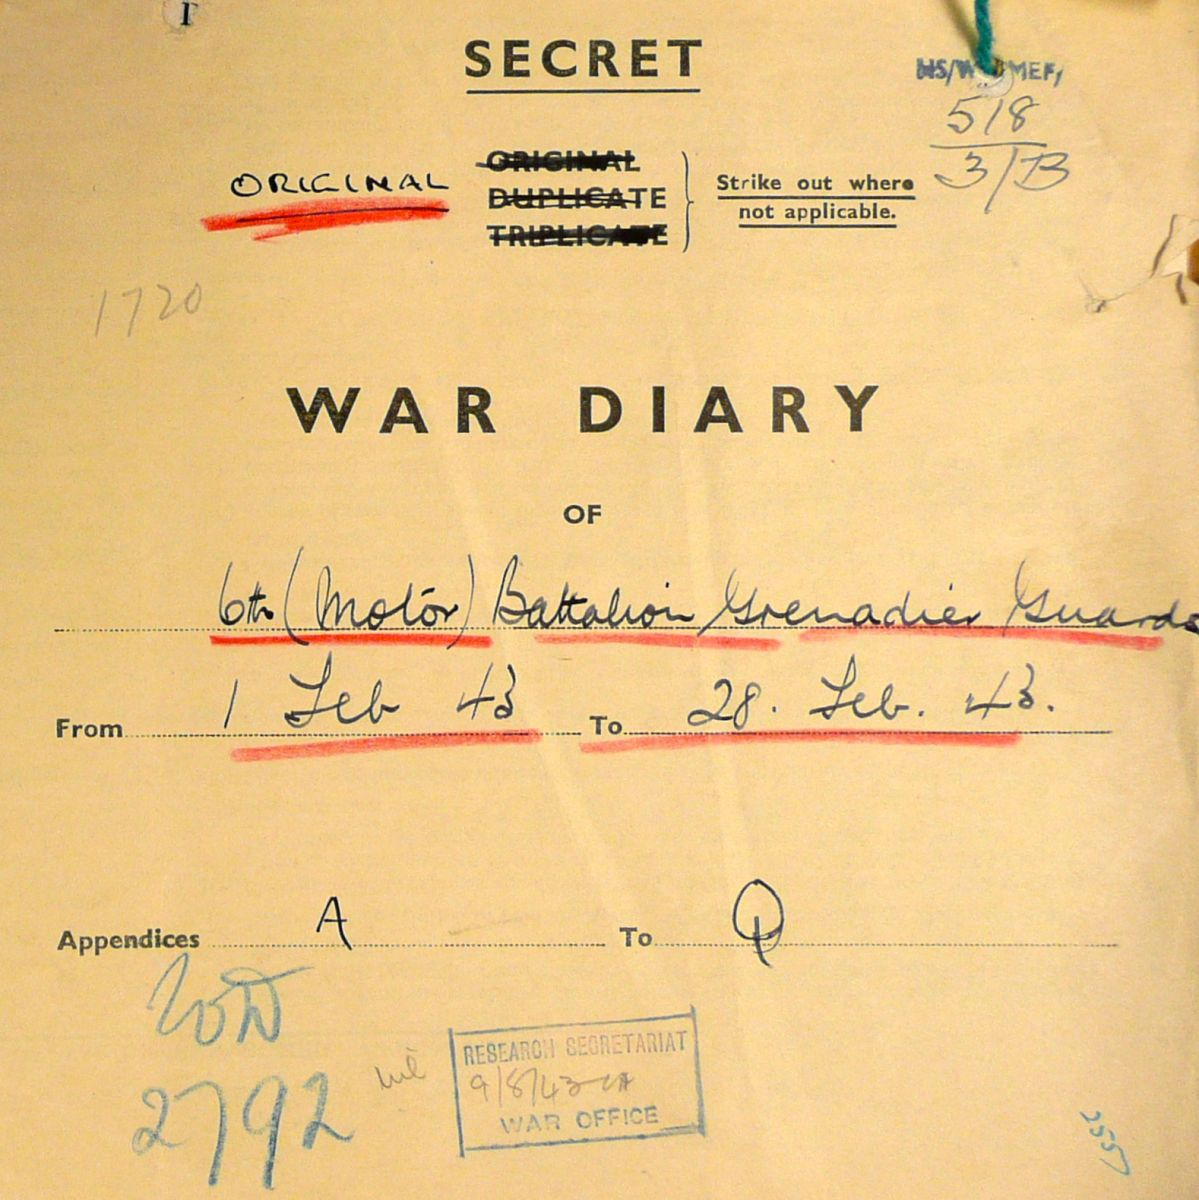 February War Diary, 6th Motor Battalion GRENADIER GUARDS, 1943